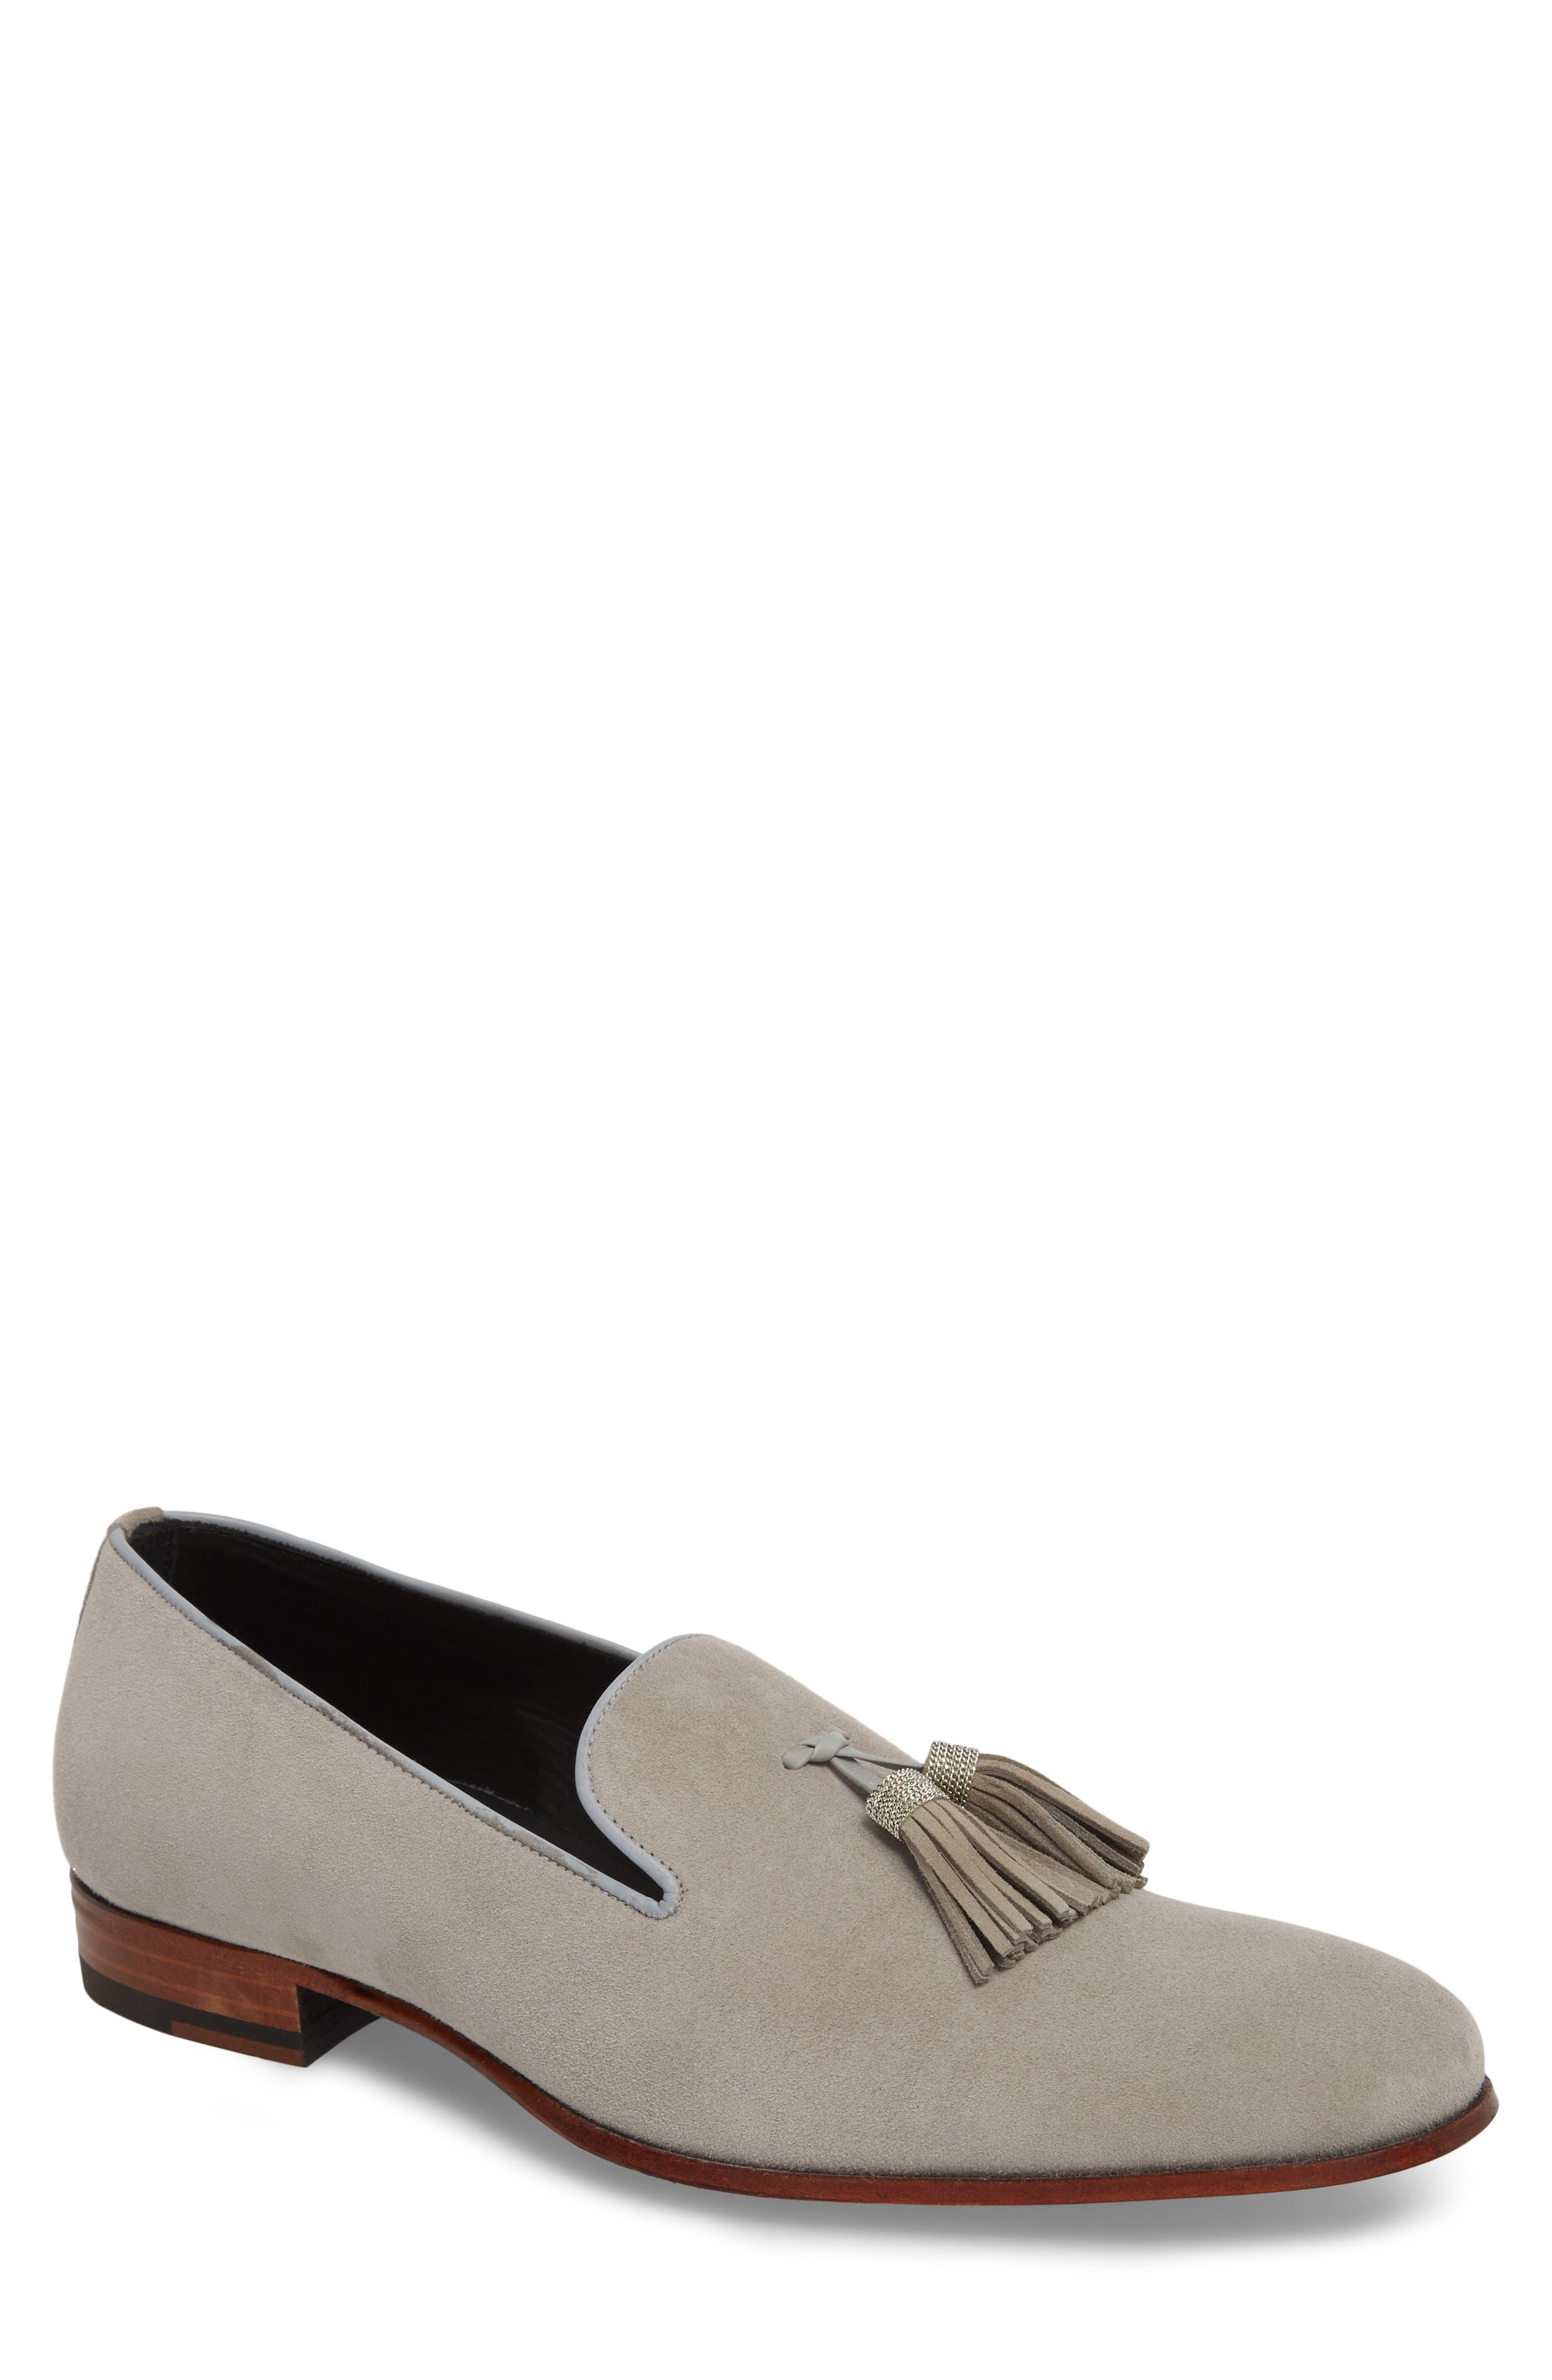 Picus Tassel Loafer,                             Main thumbnail 1, color,                             PEARL GREY SUEDE